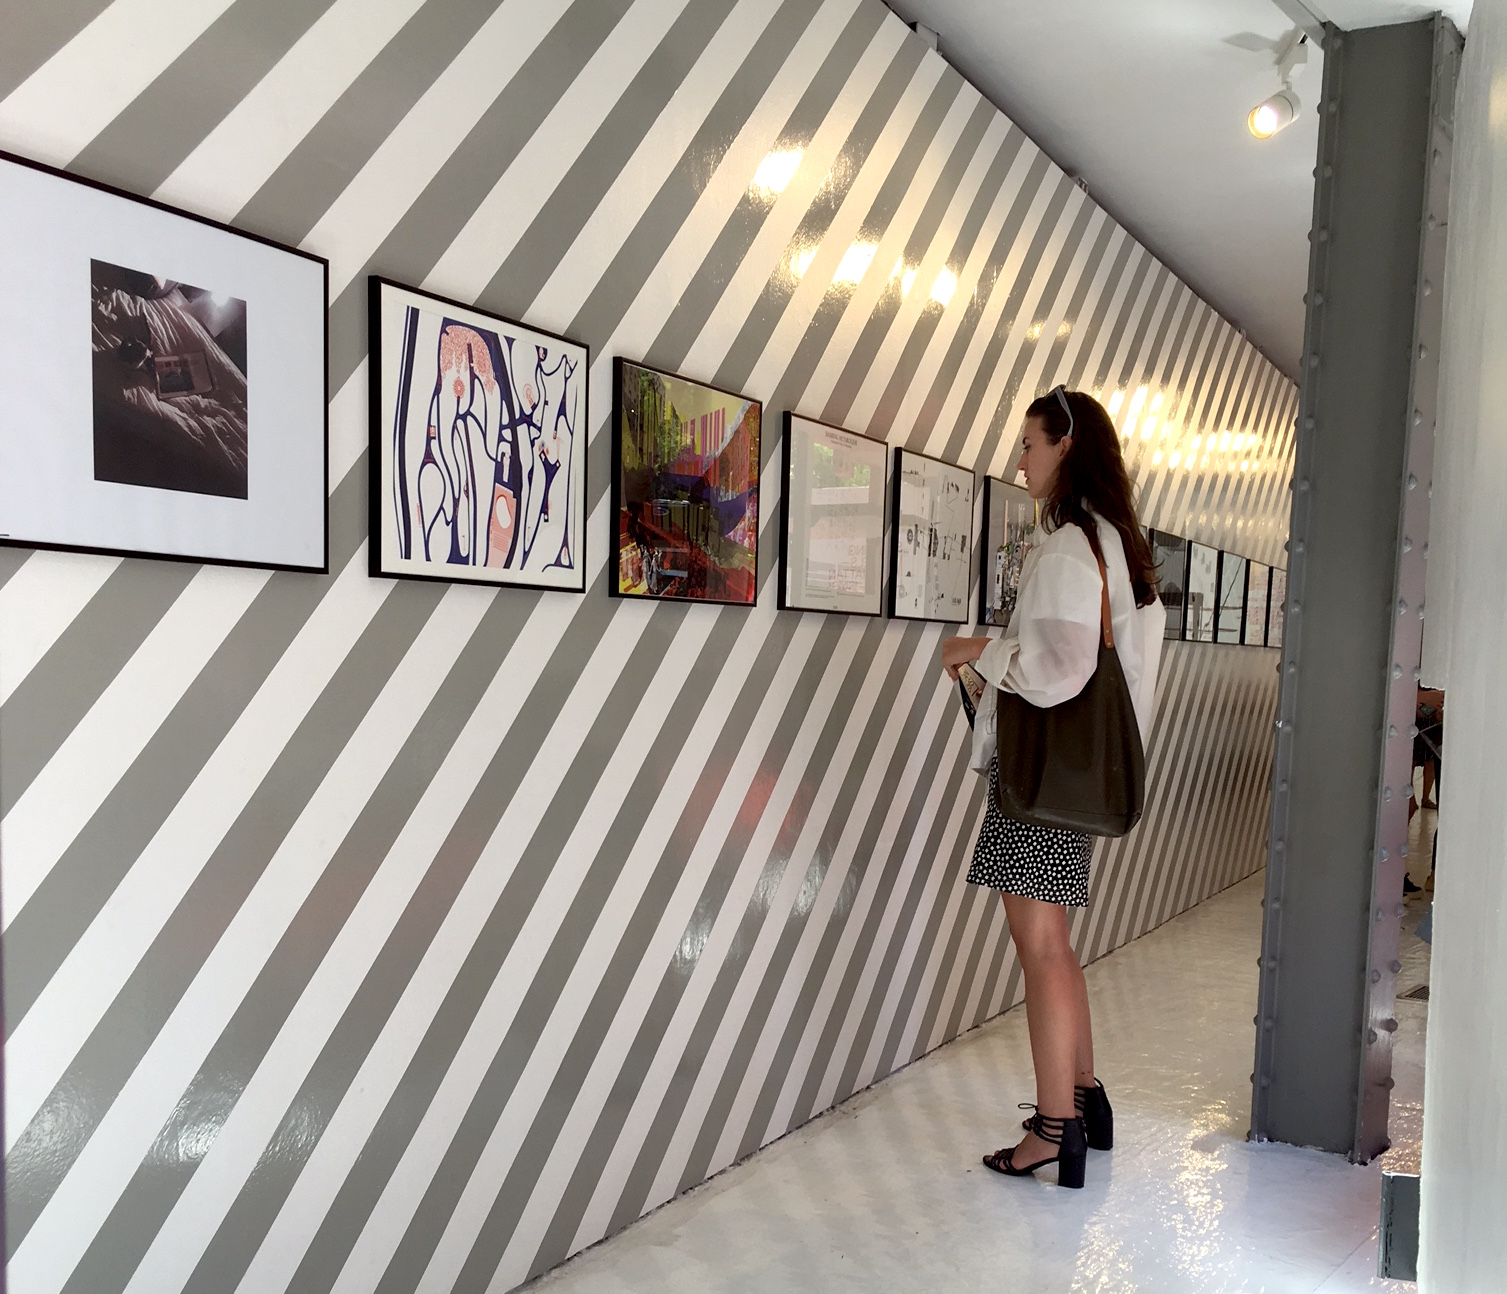 Installation view: Anna Mahony contemplates architecture renderings